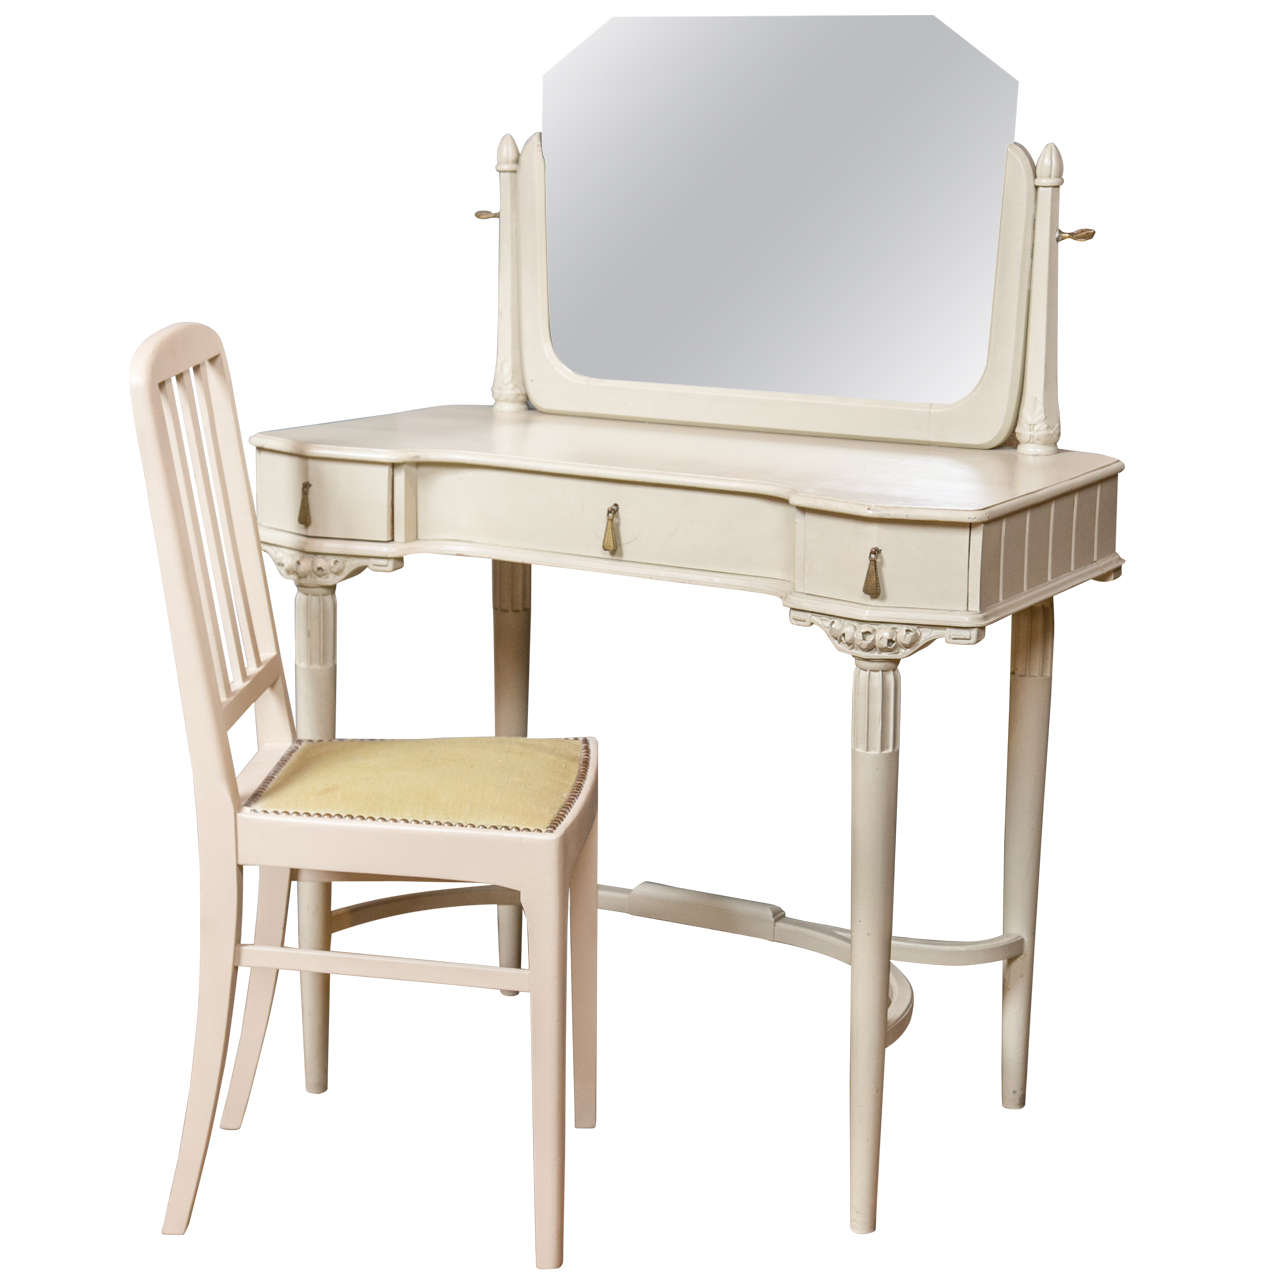 french art deco dressing table and chair for sale at 1stdibs. Black Bedroom Furniture Sets. Home Design Ideas